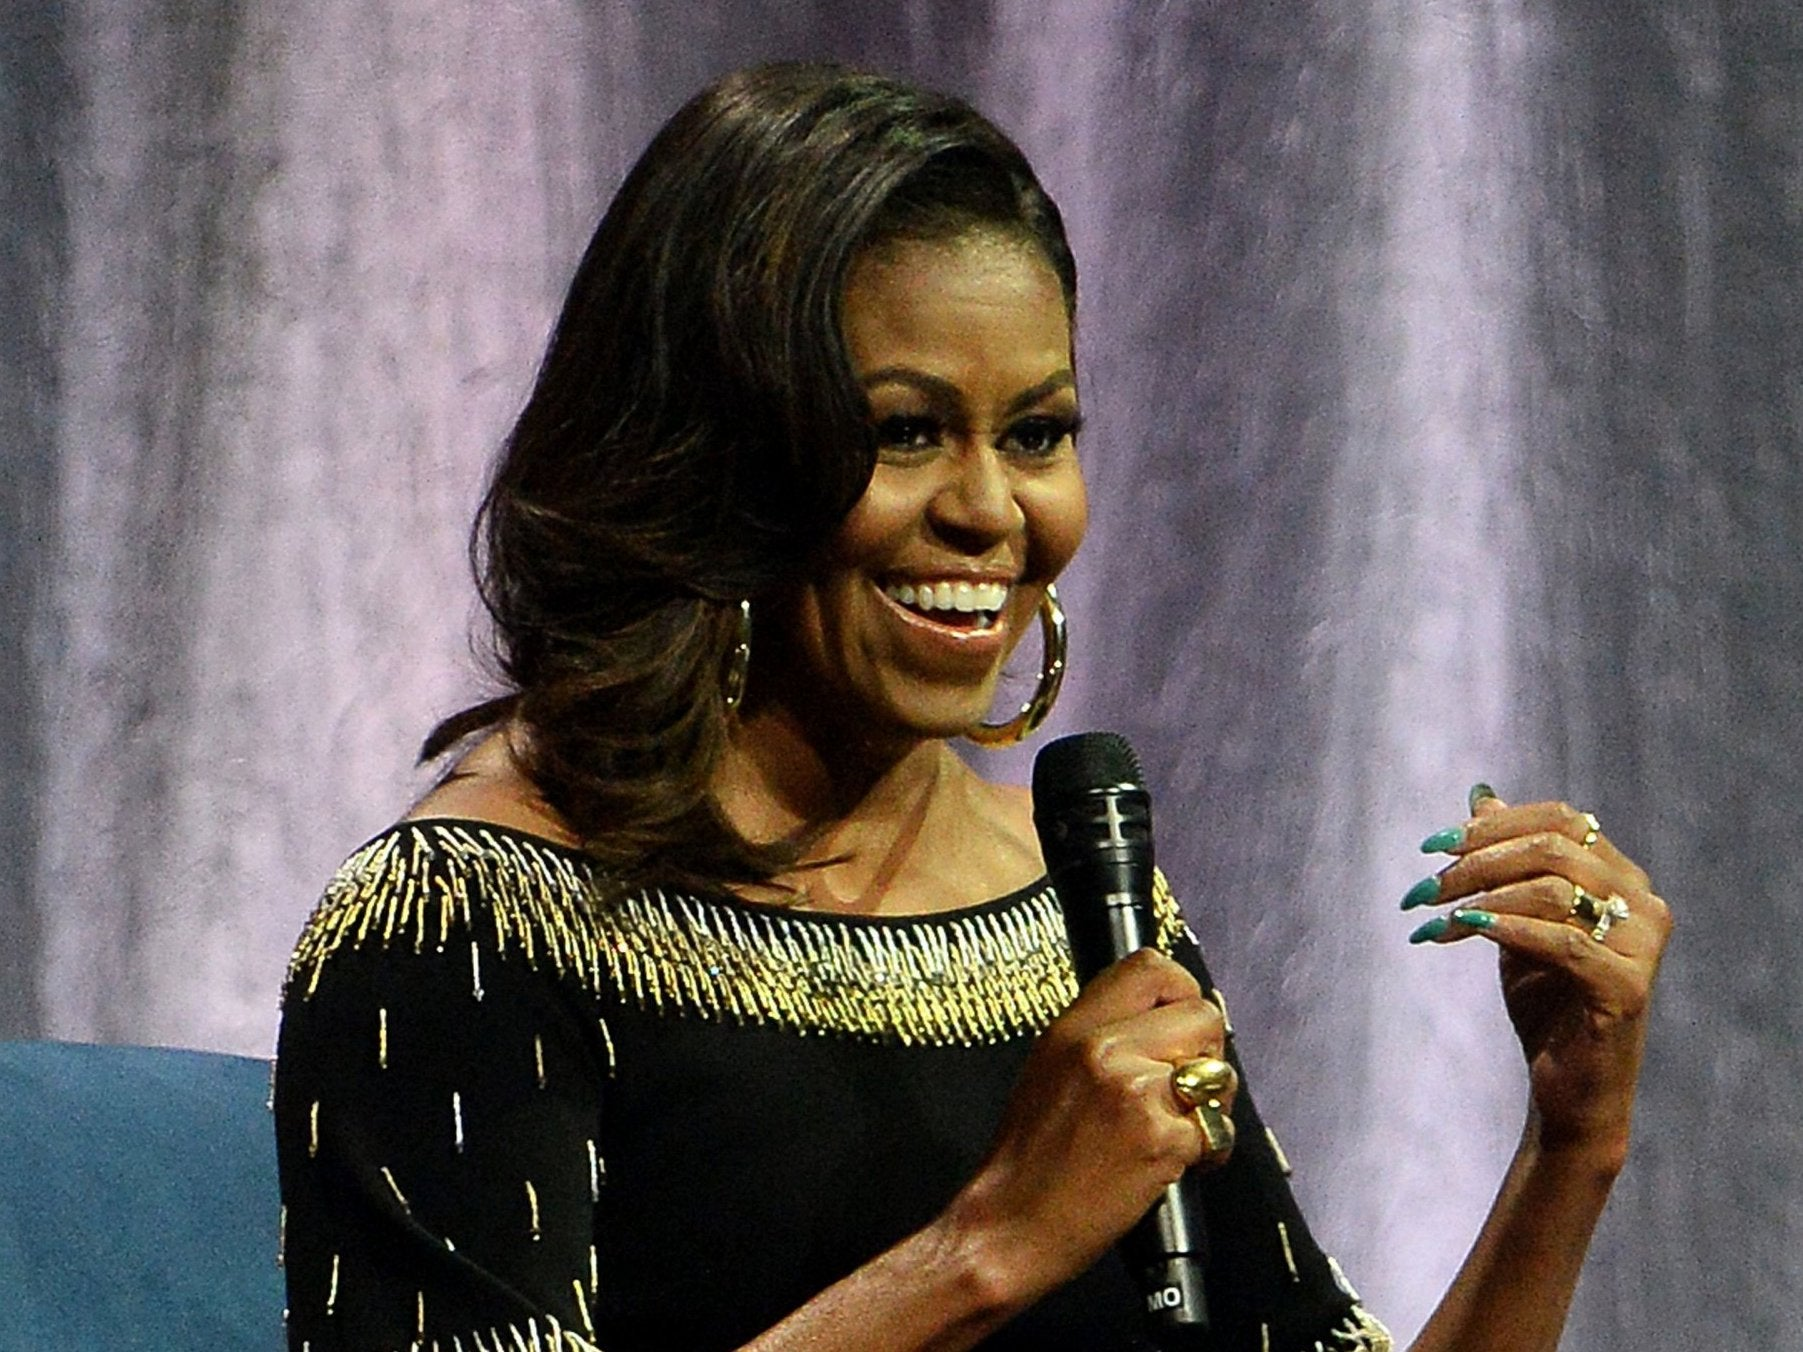 Michelle Obama compares Donald Trump to 'divorced dad' in